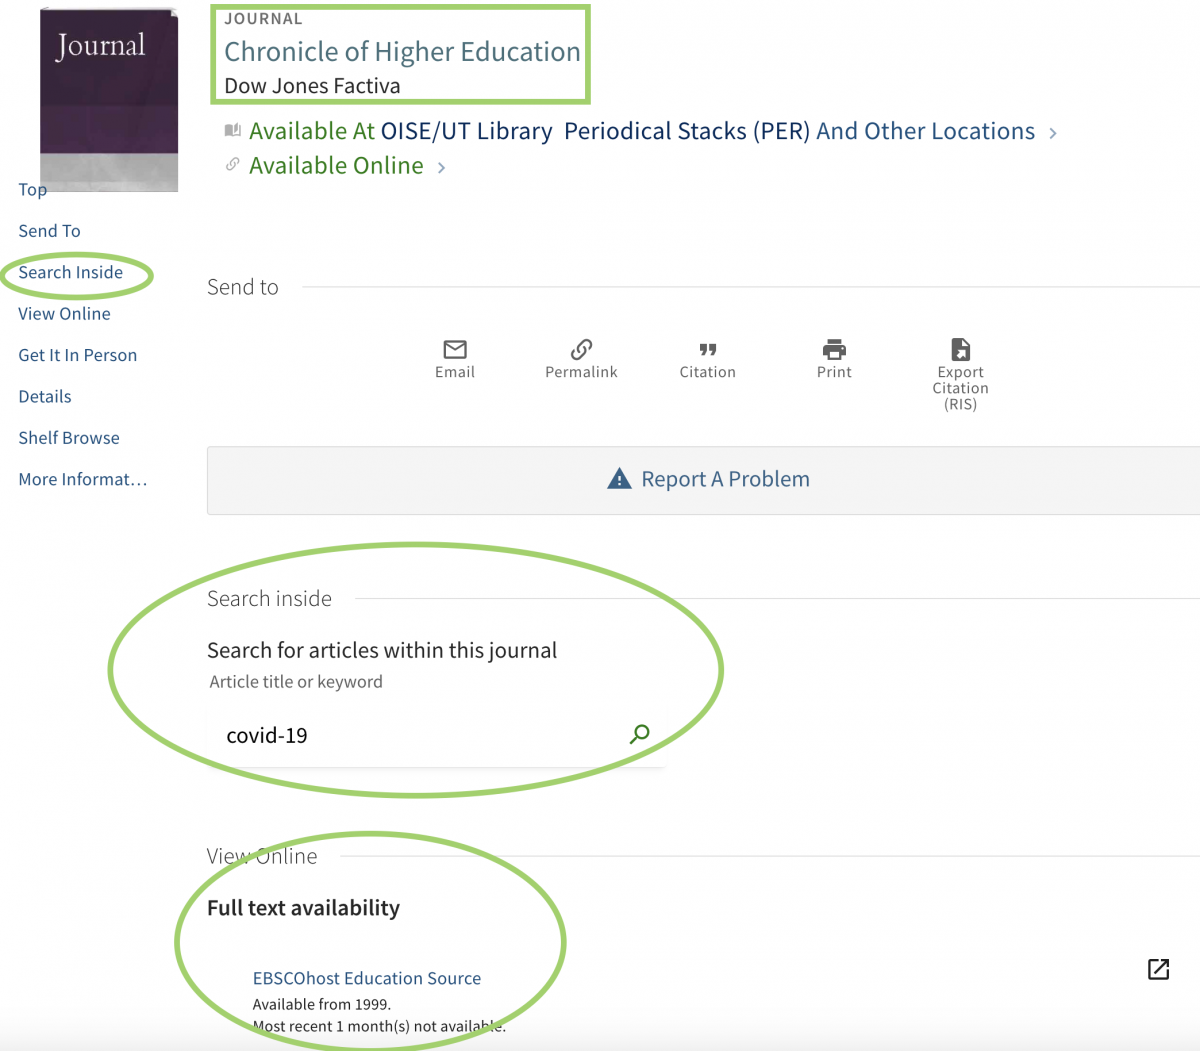 screen capture showing how to look for articles within the Chronicle of Higher Education